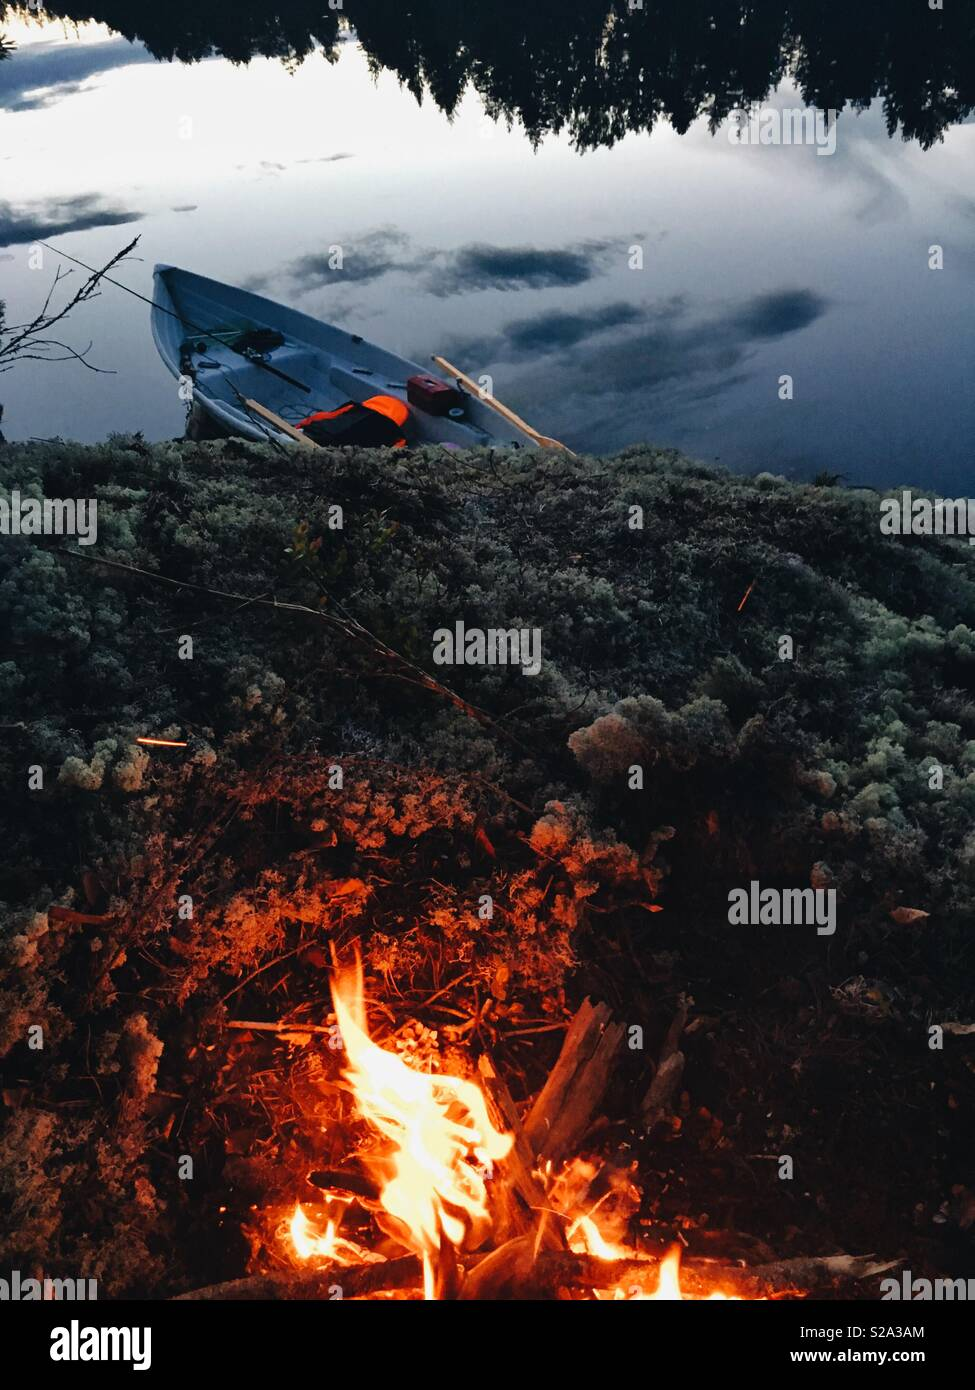 Campfire by the Nordic lake - Stock Image